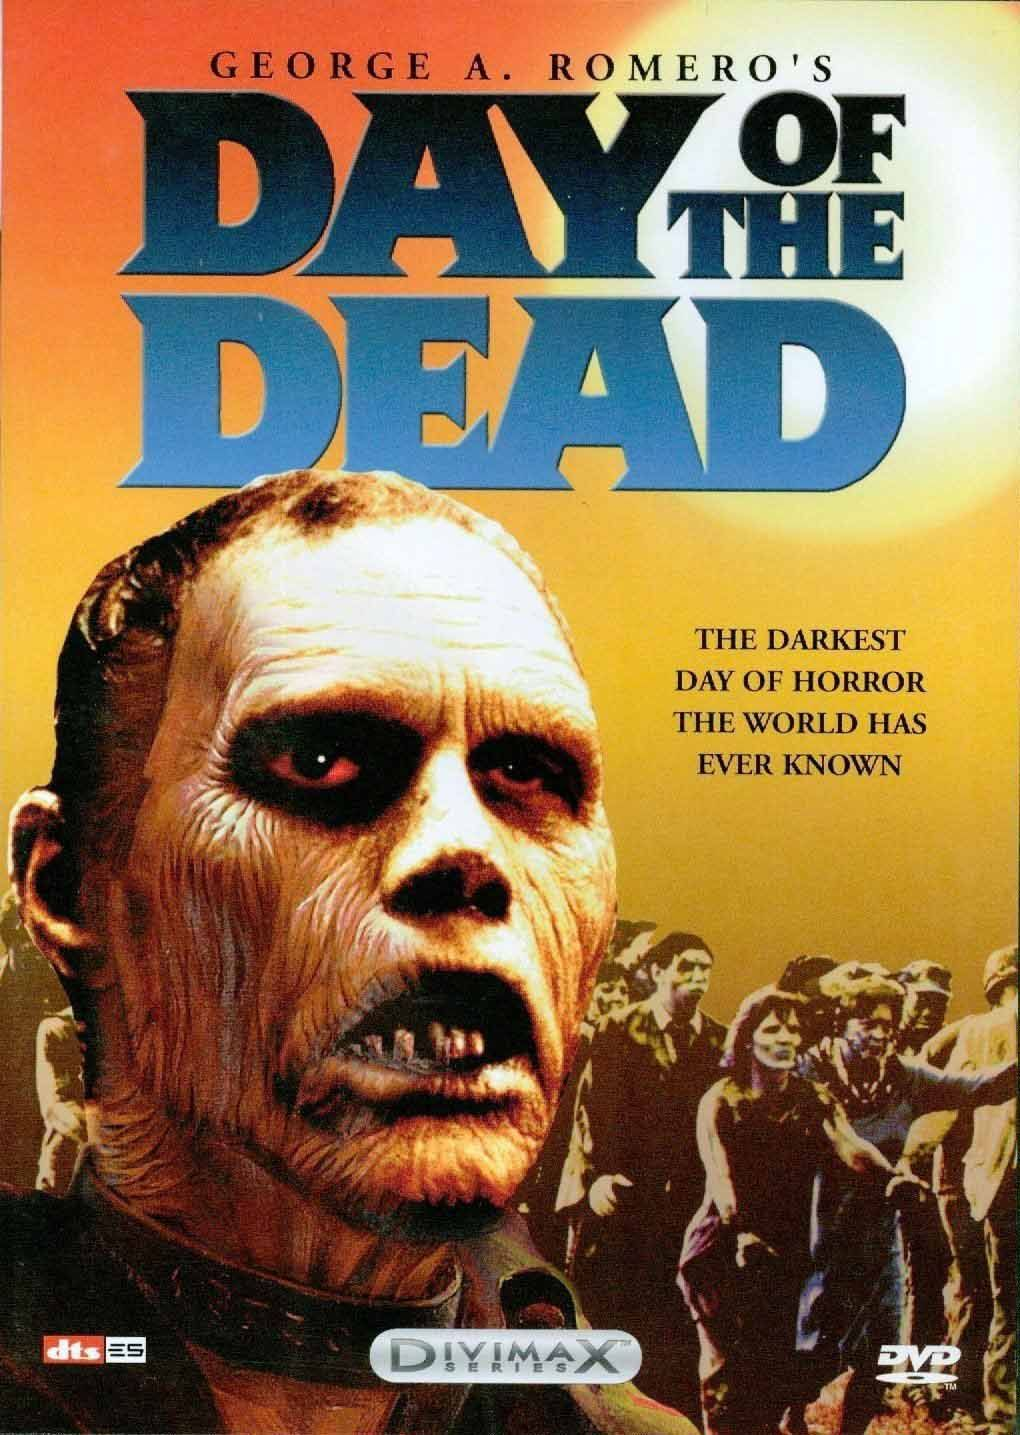 Day of the Dead (1985) Horror, Thriller, Drama, Action